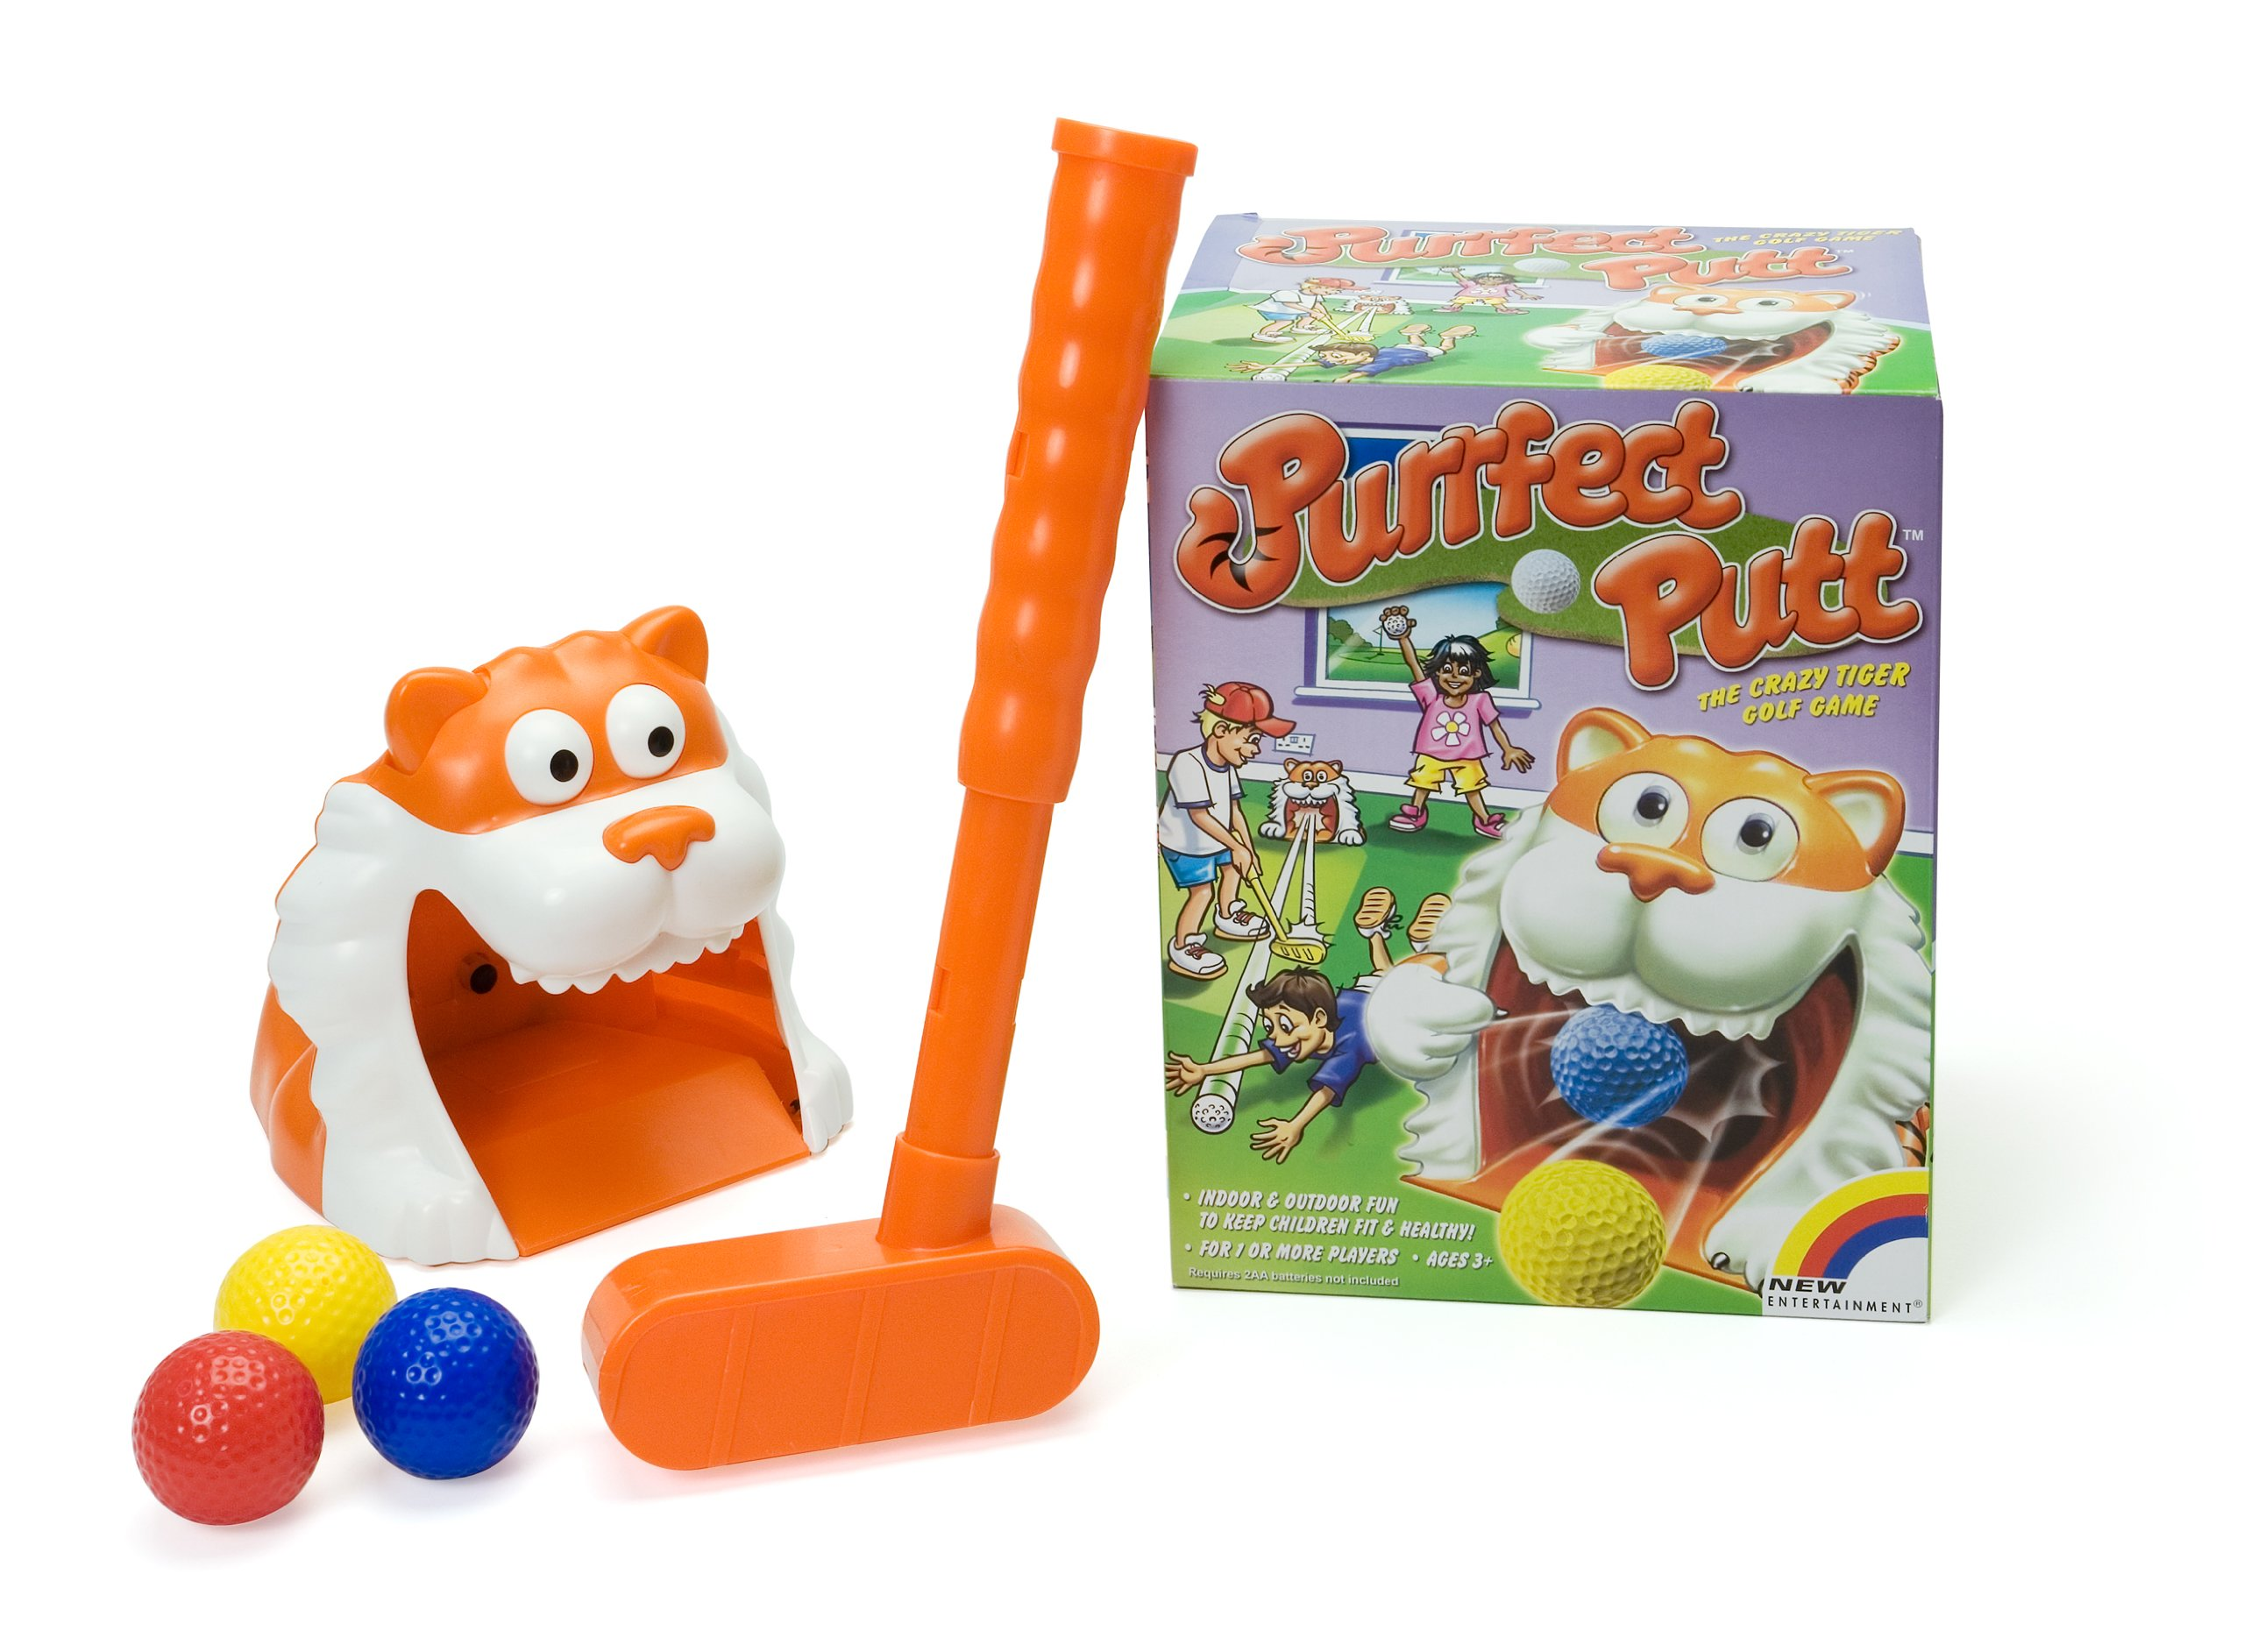 Purrfect Putt Golf Game by New Entertainment